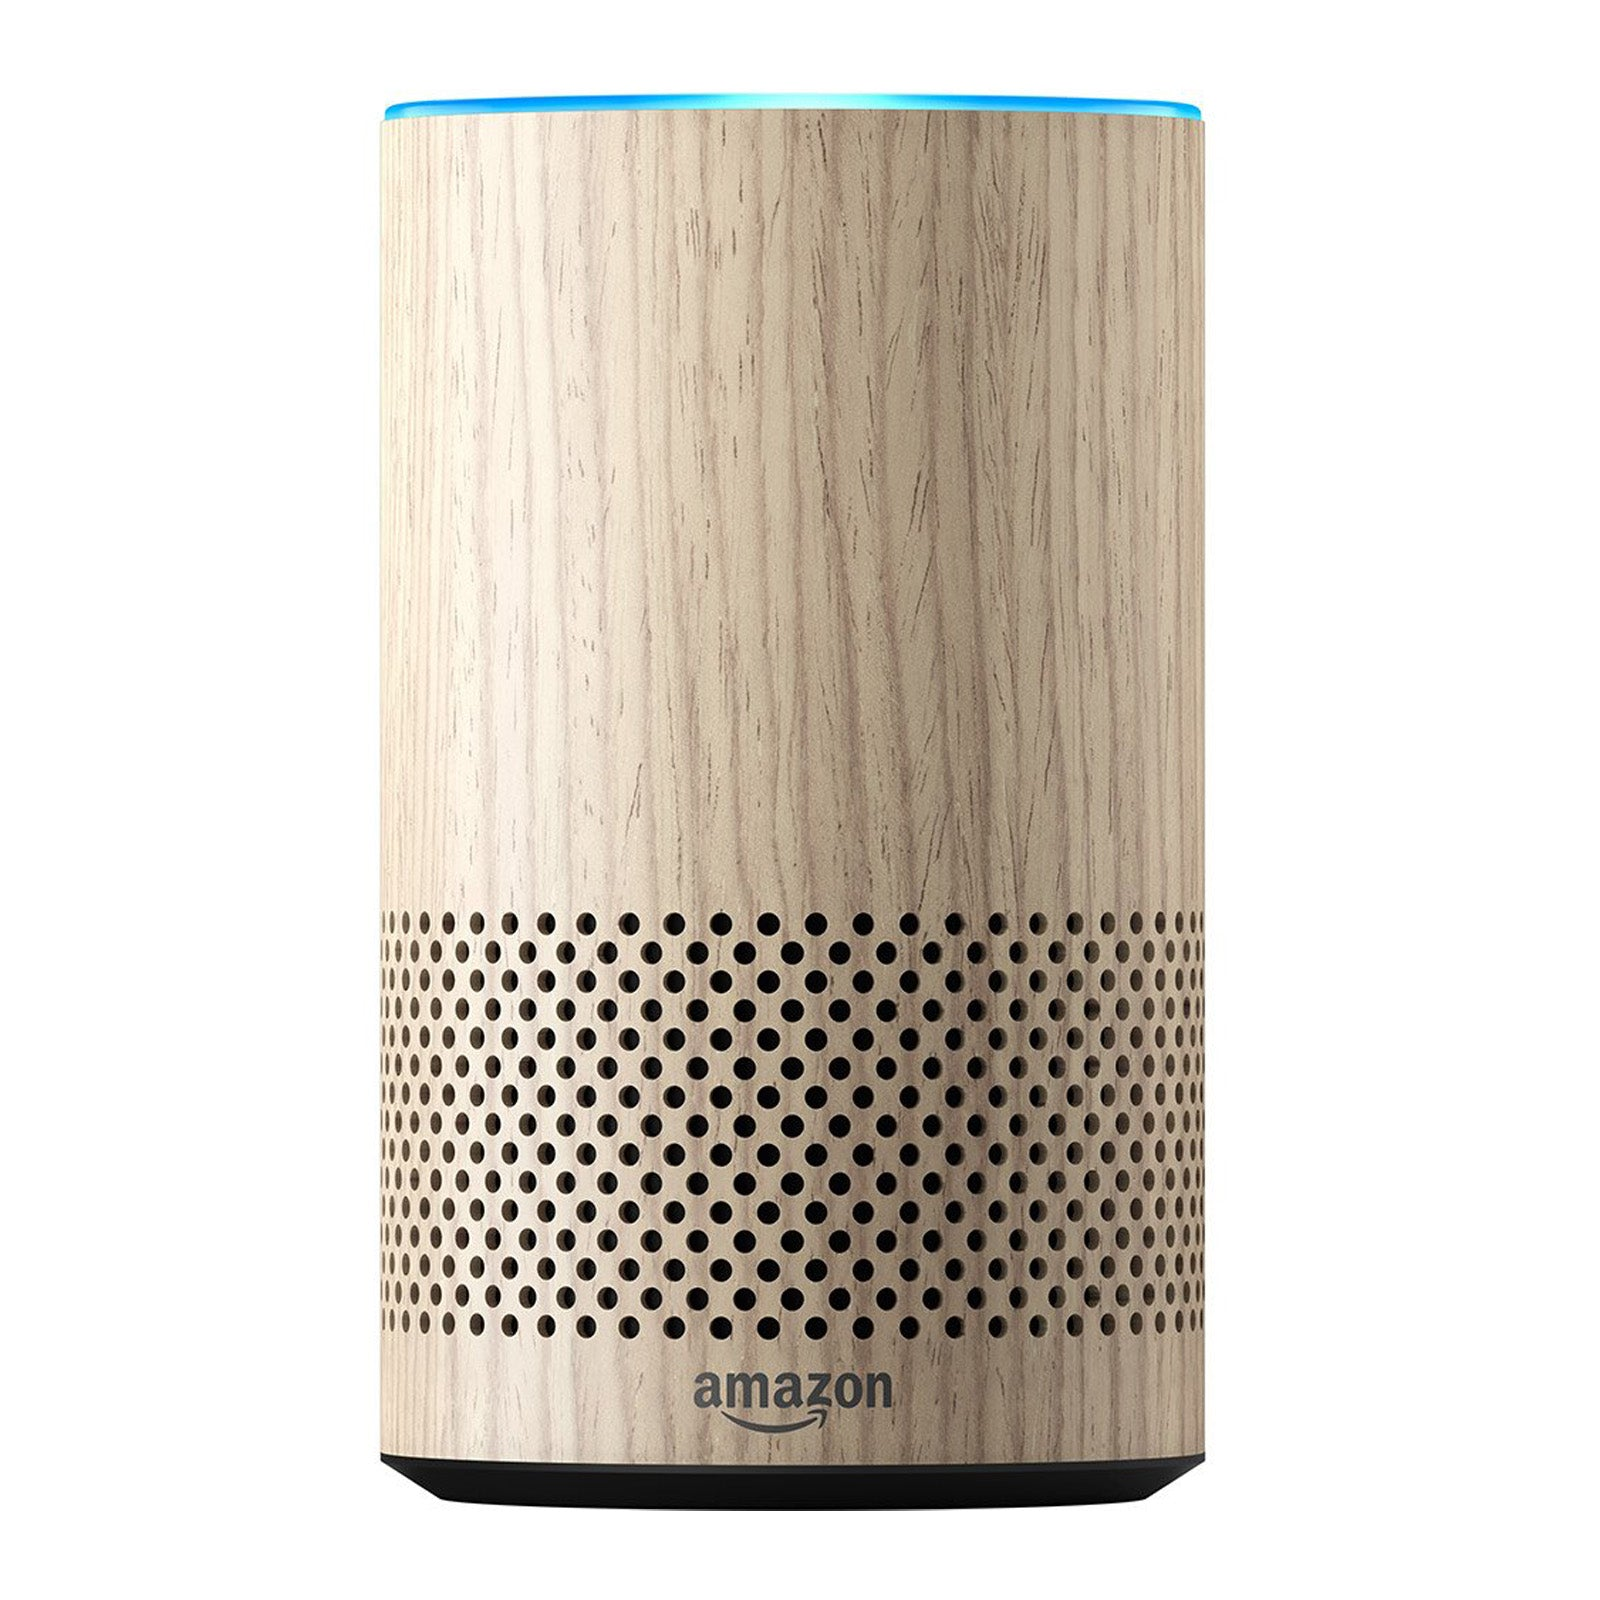 Amazon Echo 2nd Generation Smart Speaker with Alexa - (Oak Finish)